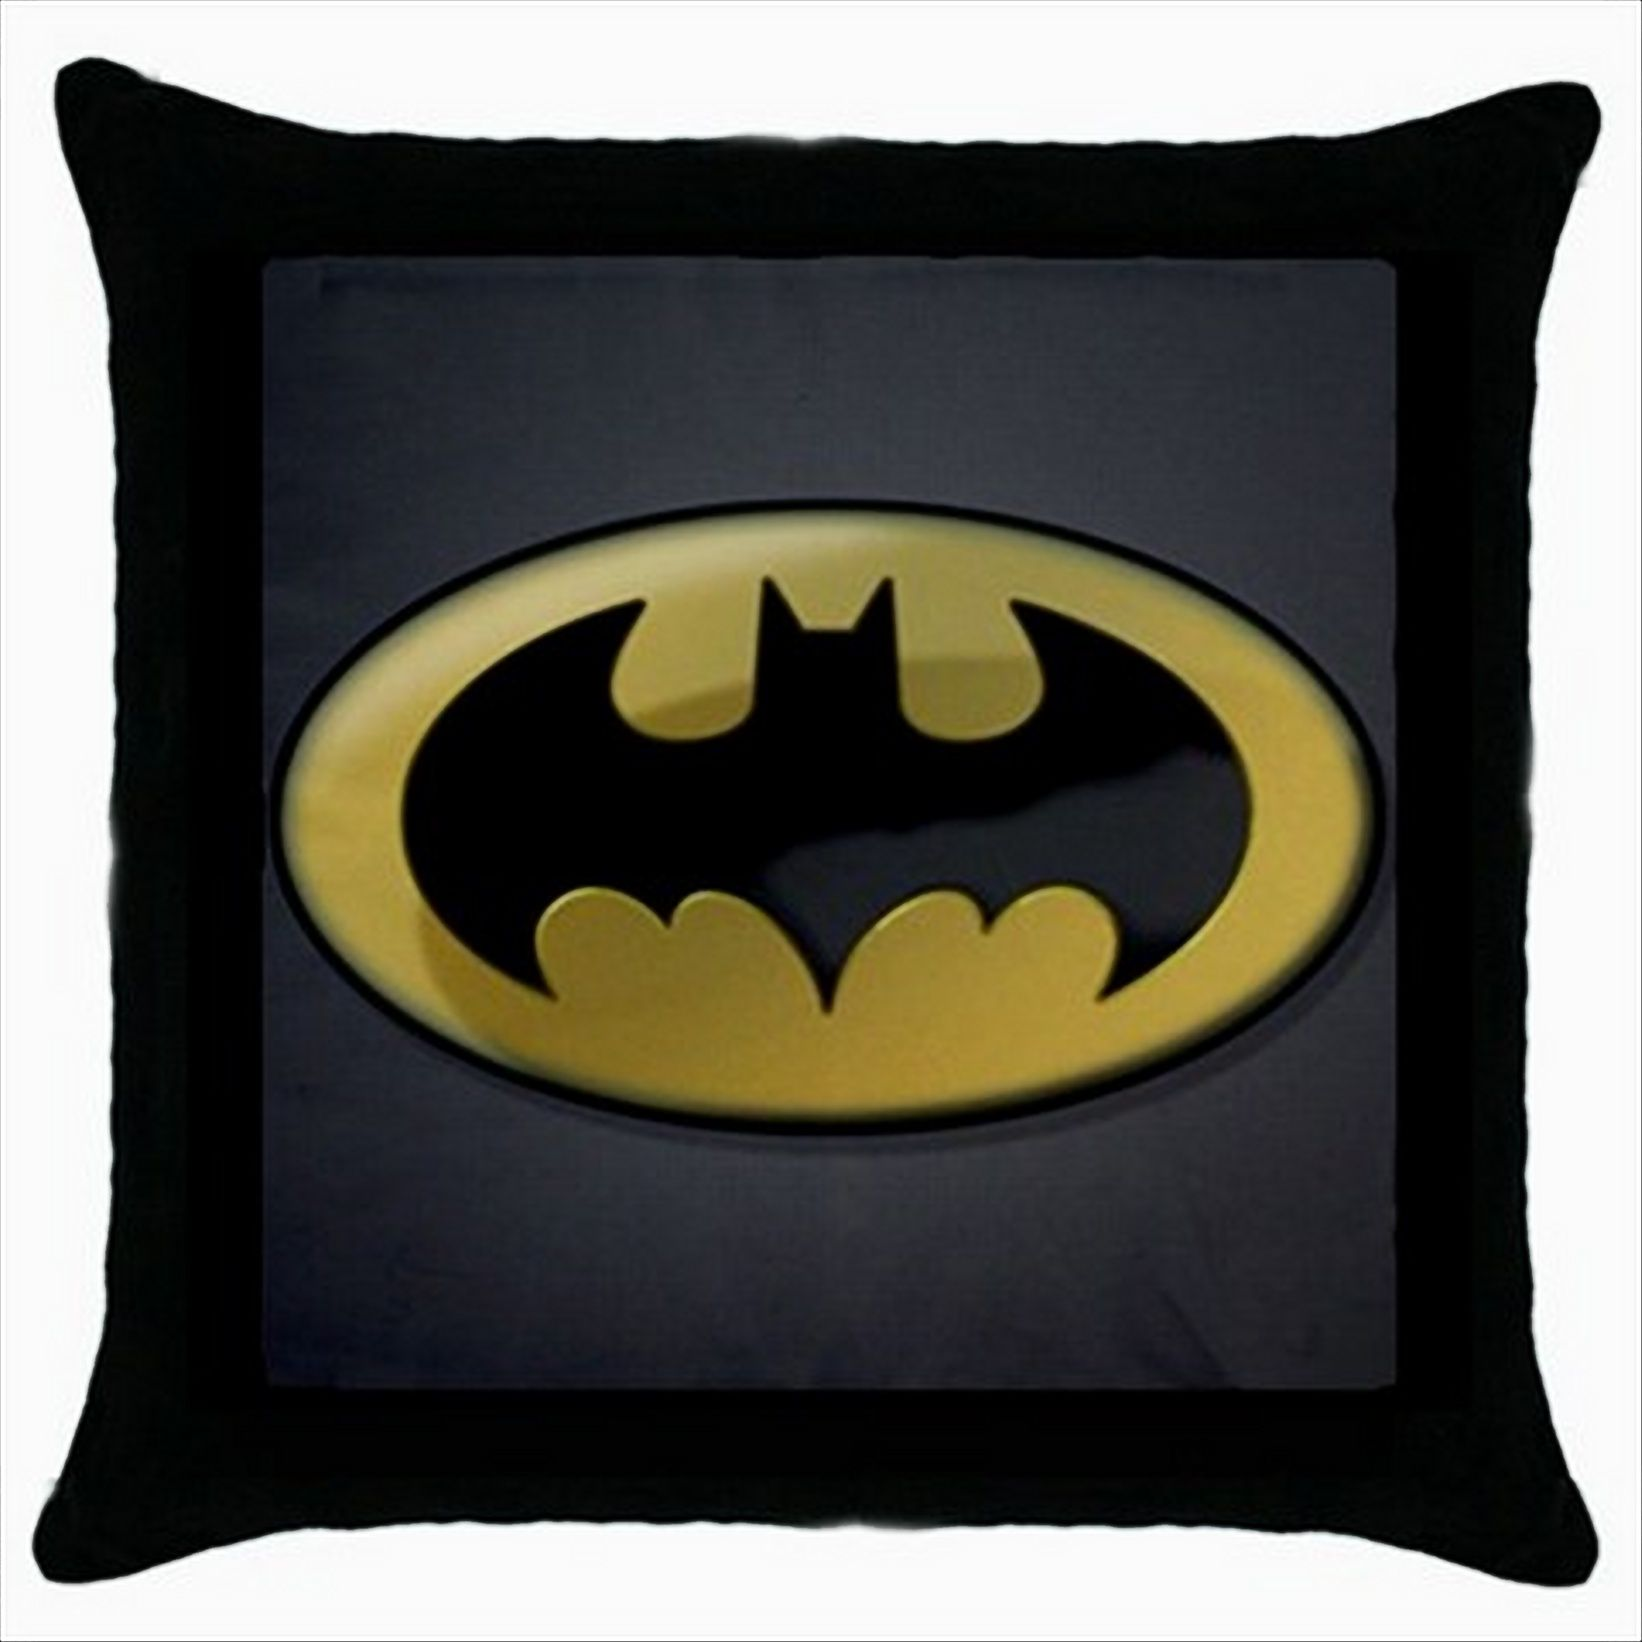 BATMAN LOGO Black Cushion Cover Throw Pillow Case Gift Ebay